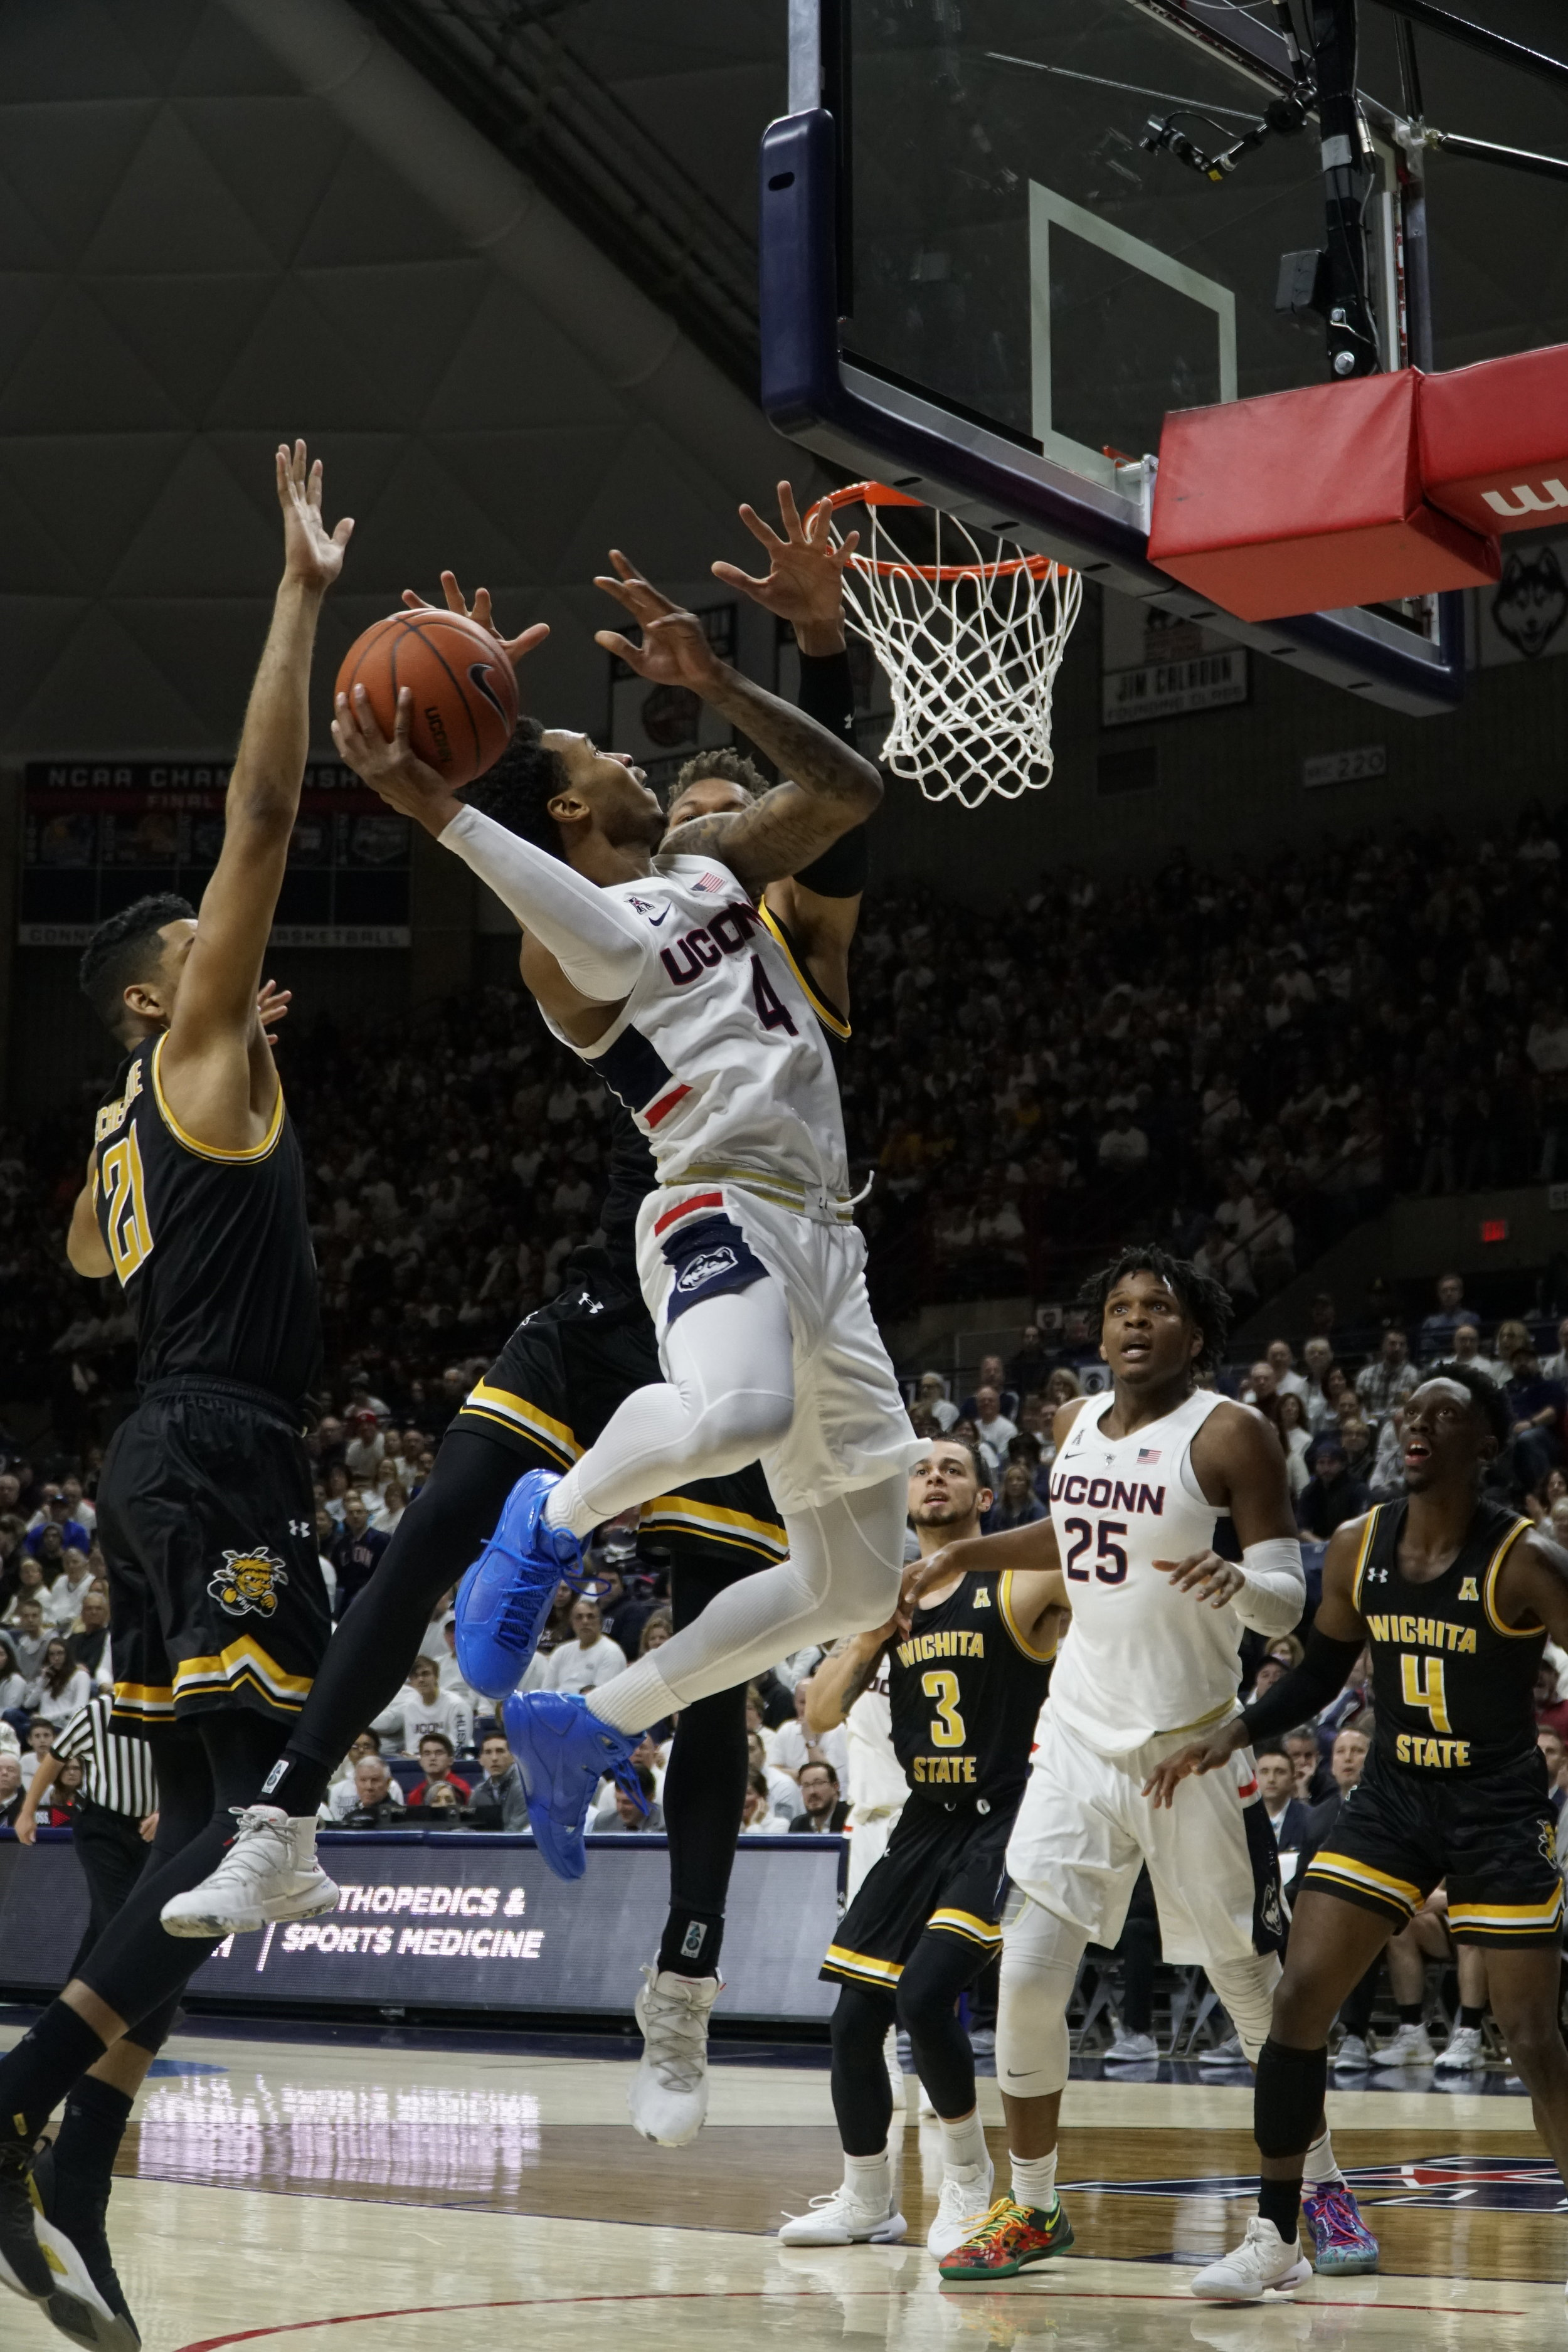 Jalen Adams rises up for a layup in an 80-60 victory over Wichita State. (Eric Wang/The Daily Campus)